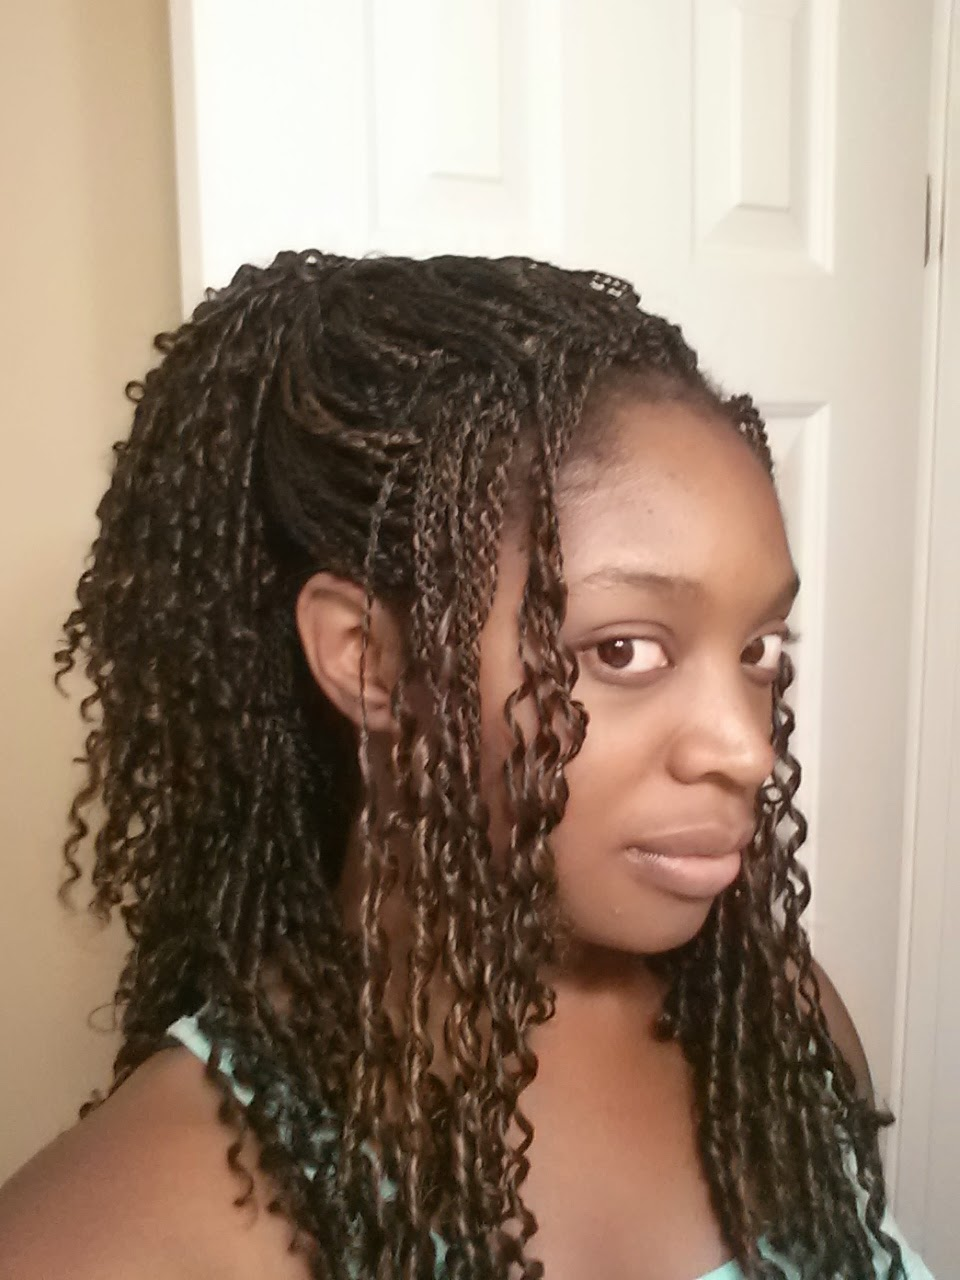 Crochet Box Braids Pre Braided : Crochet Pre Braided Hair with Braids